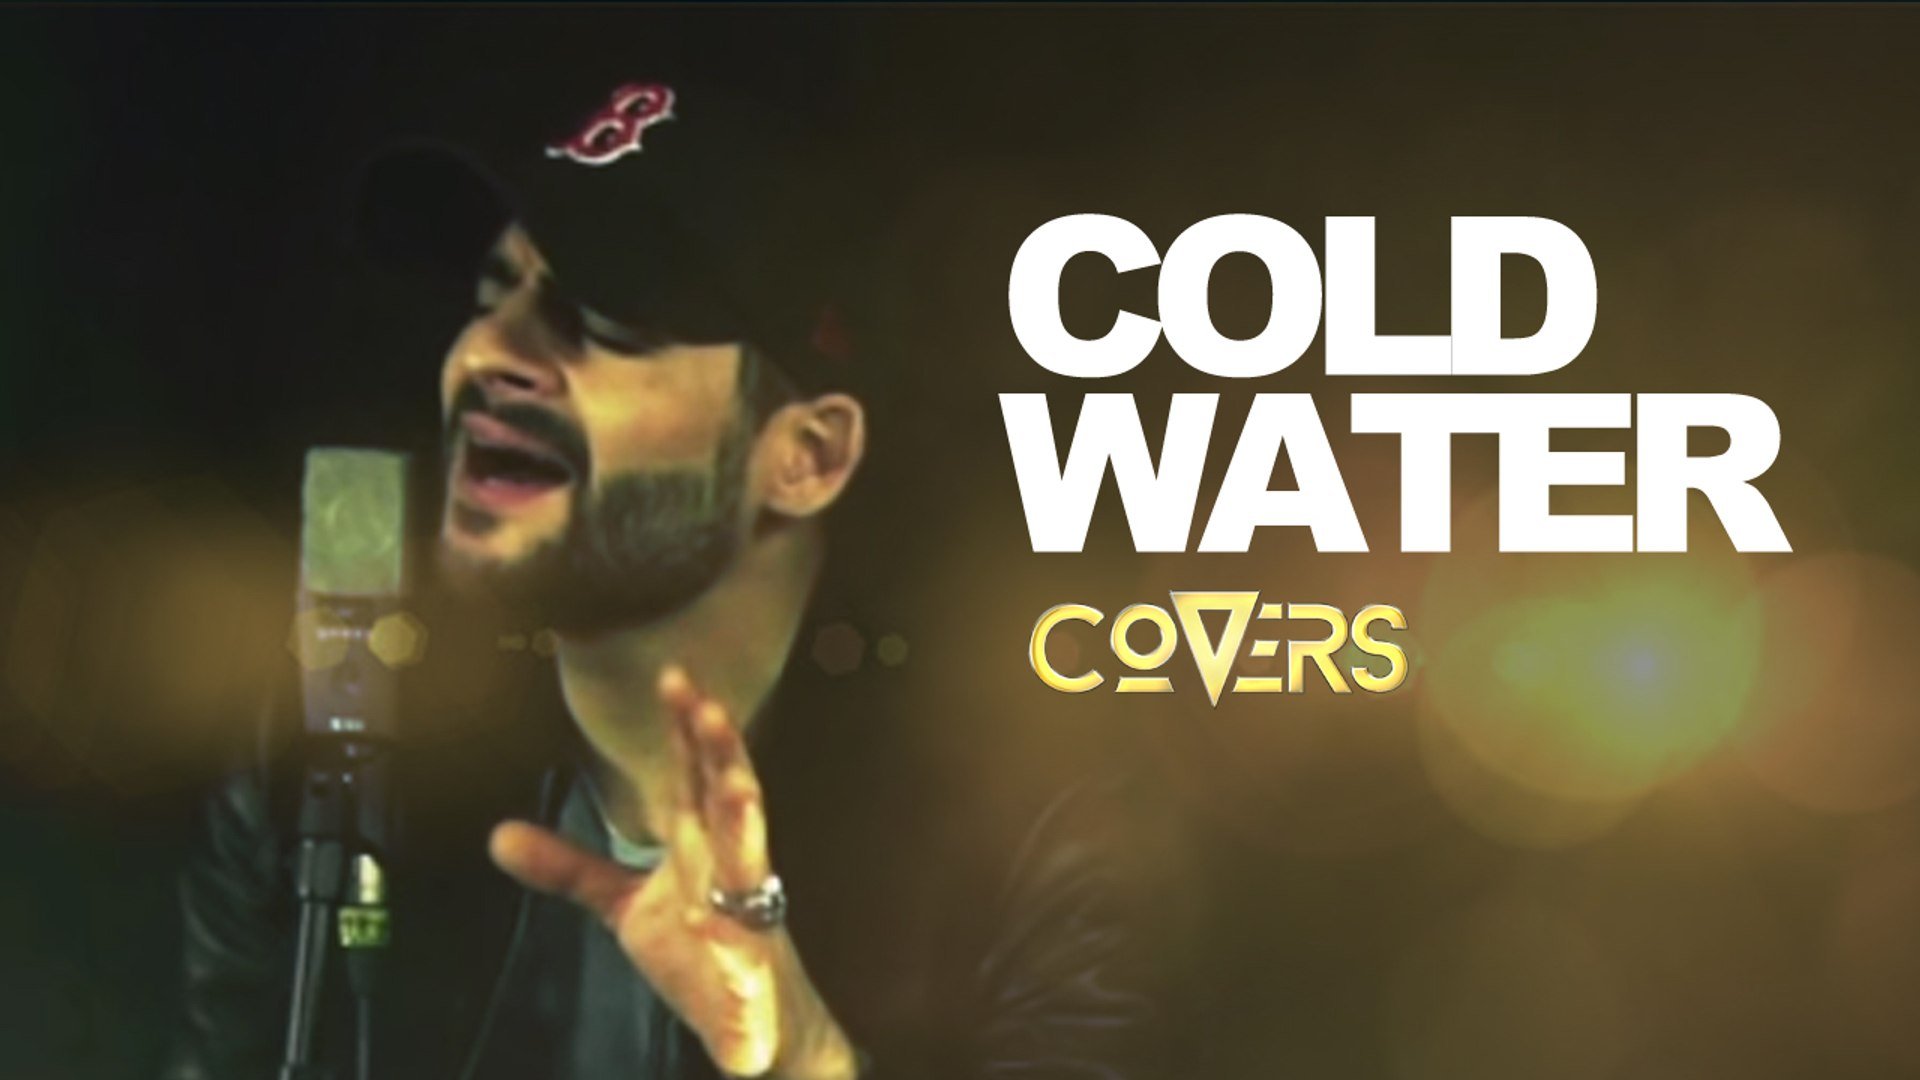 Cold Water  – Major Lazer (feat. Justin Bieber & MØ) - (Cover by Jeremy Ichou) - Covers